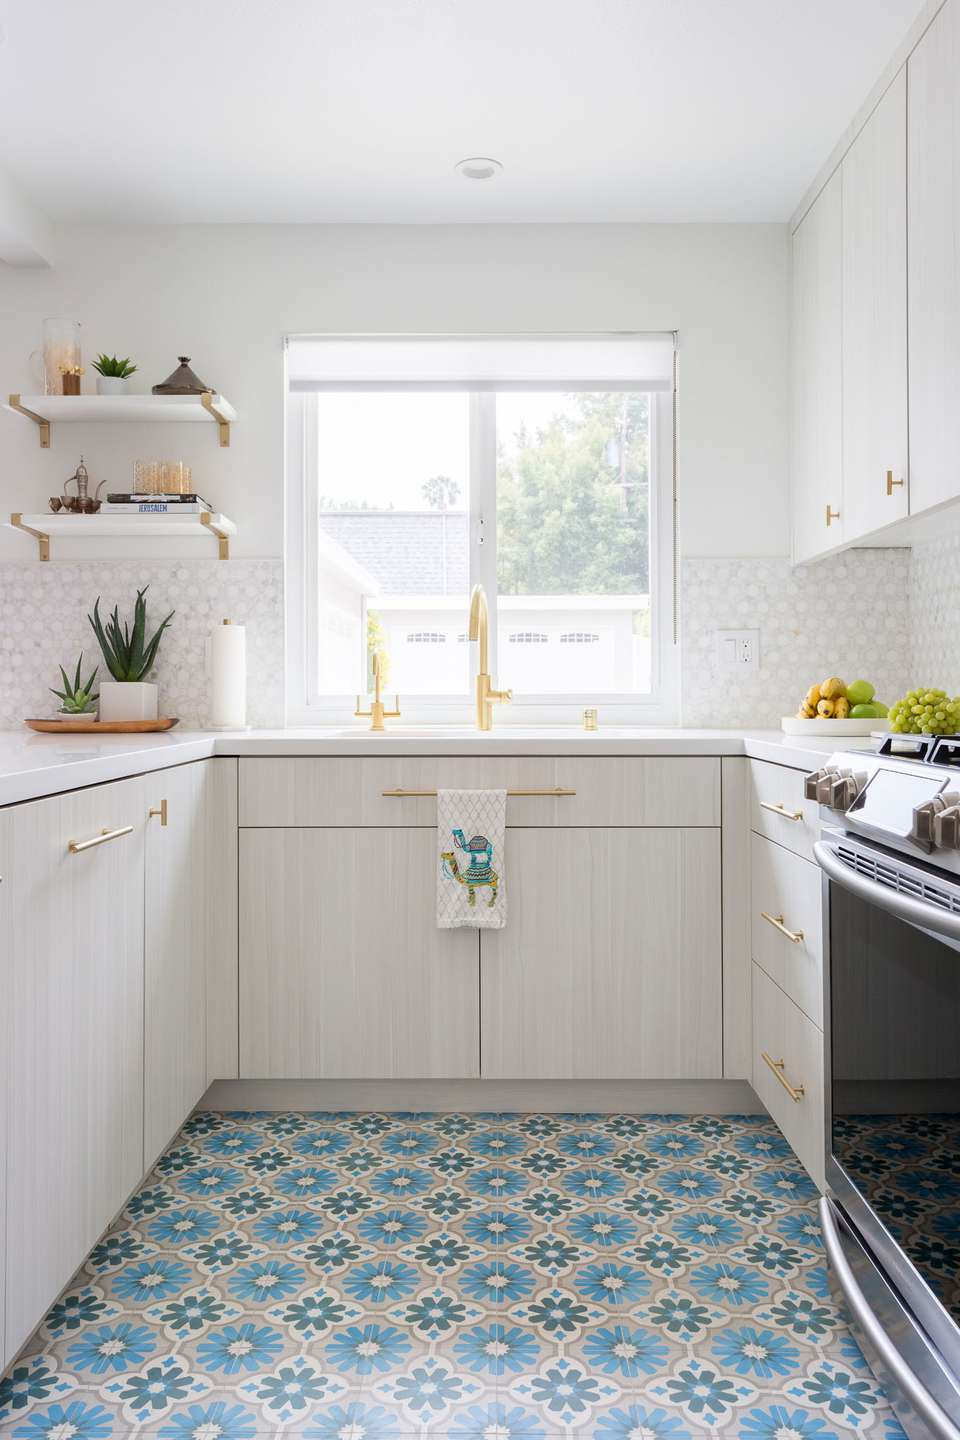 12 Moroccan Tile Ideas For Floors and Backsplashes